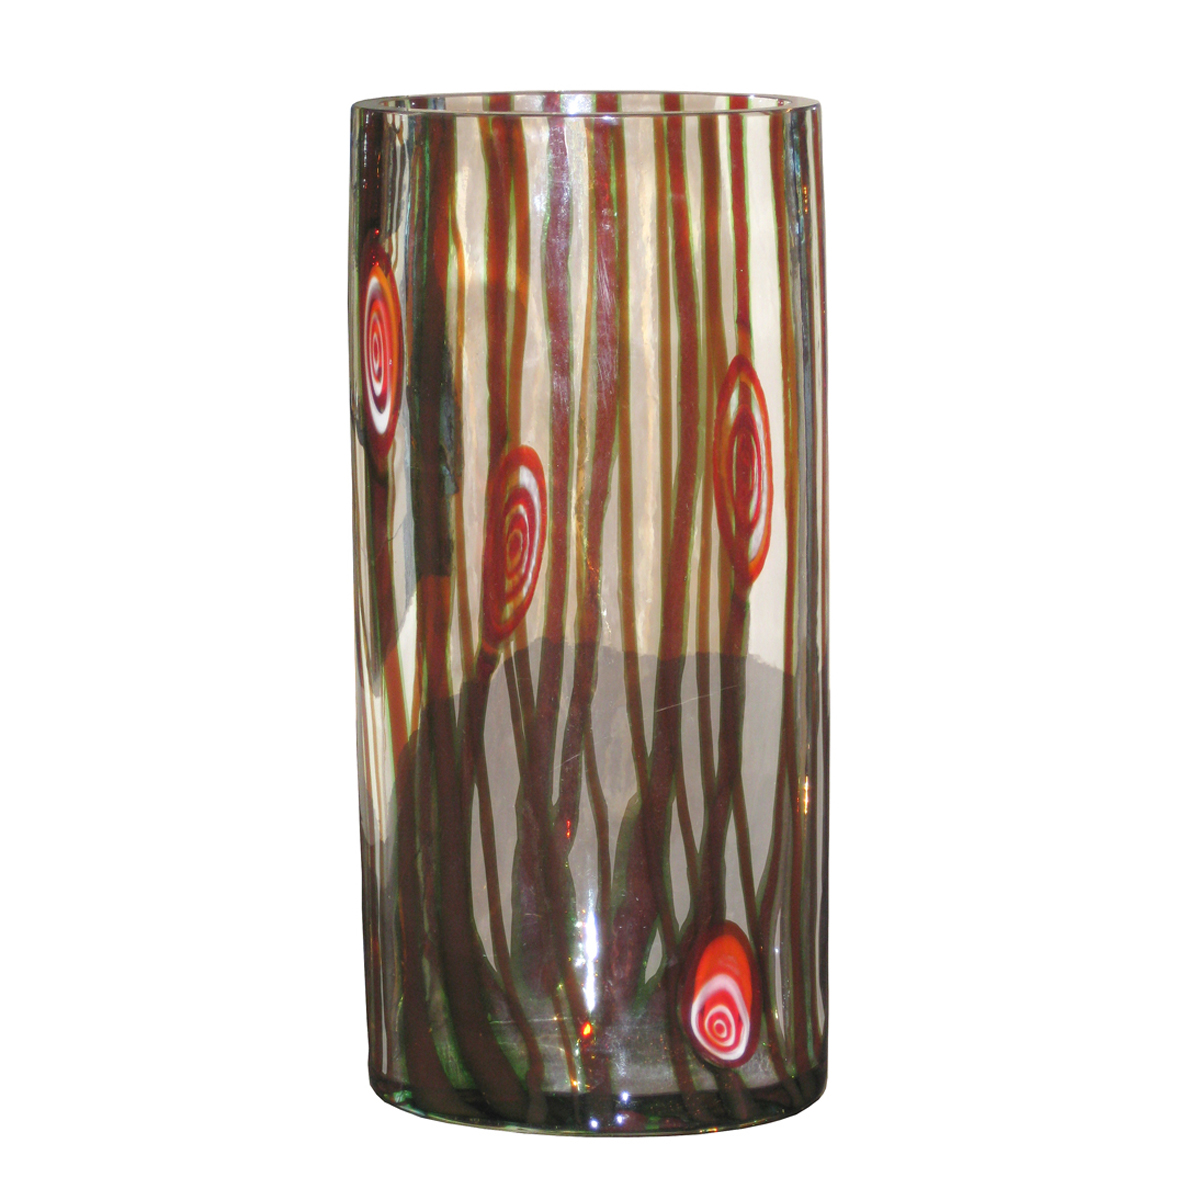 Clear Murano Glass Vase With Brown Striped Patterning By